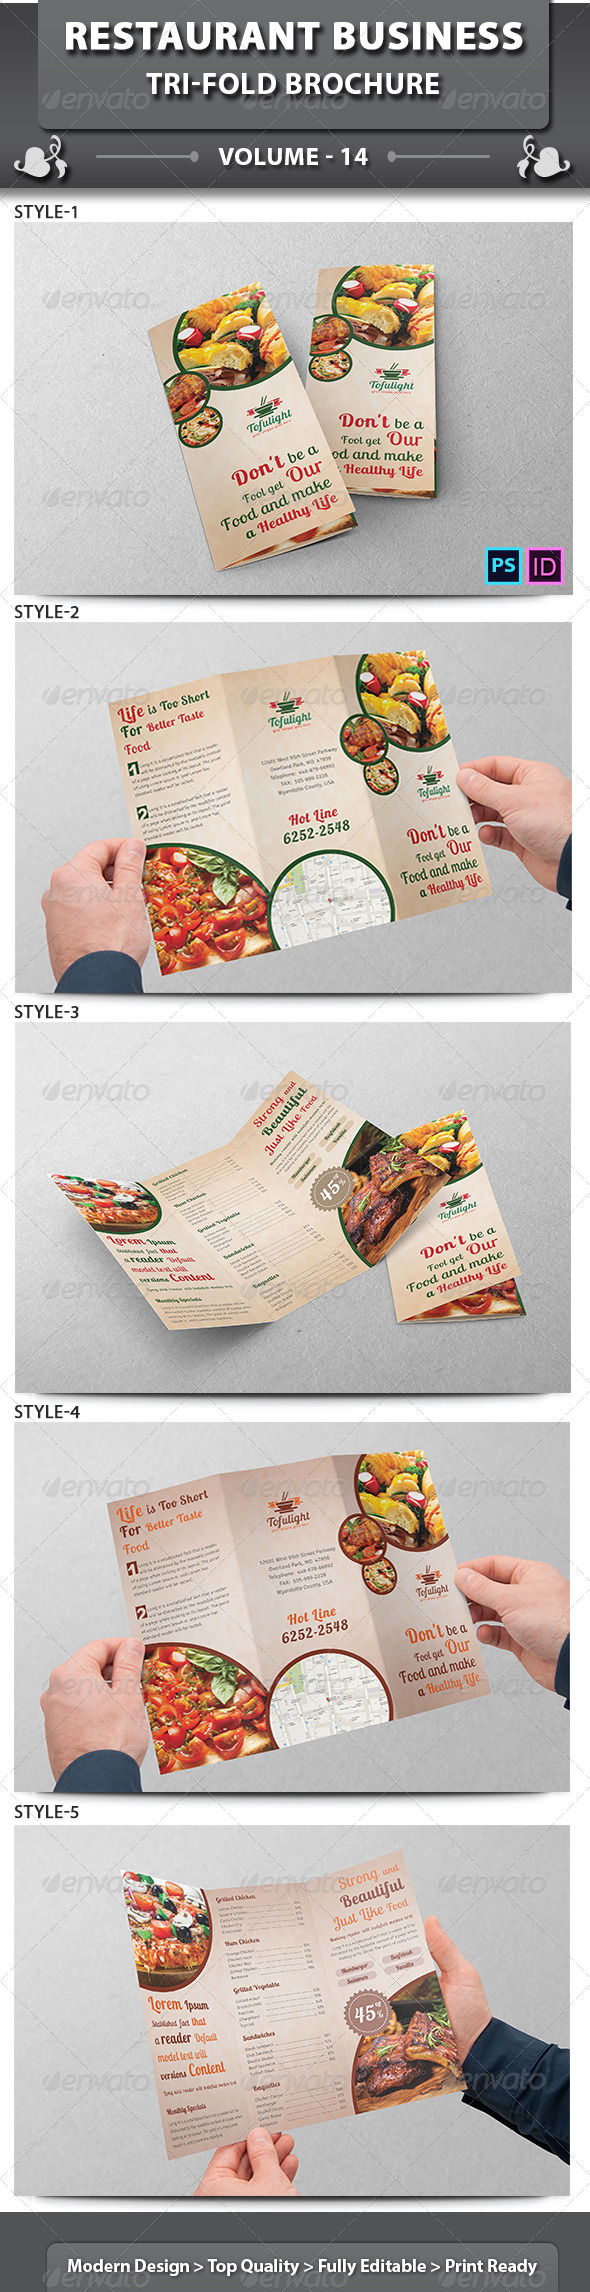 Restaurant Business Tri-fold Brochure | Volume 14 - Informational Brochures